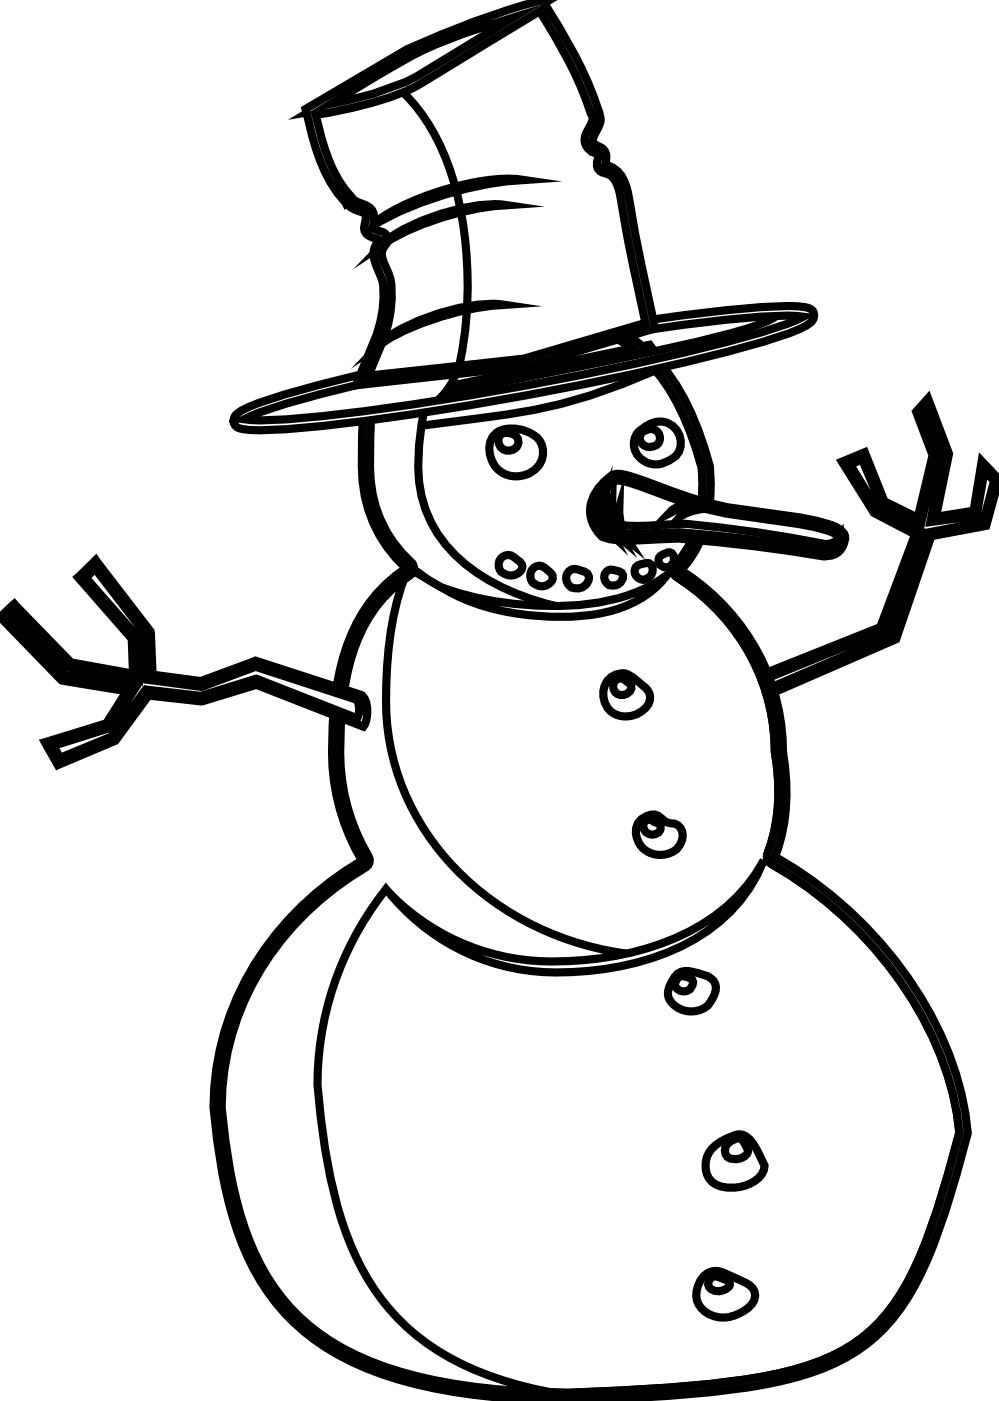 Christmas clipart black and white jpg download 28+ Collection of Christmas Clipart Black And White Snowman | High ... jpg download